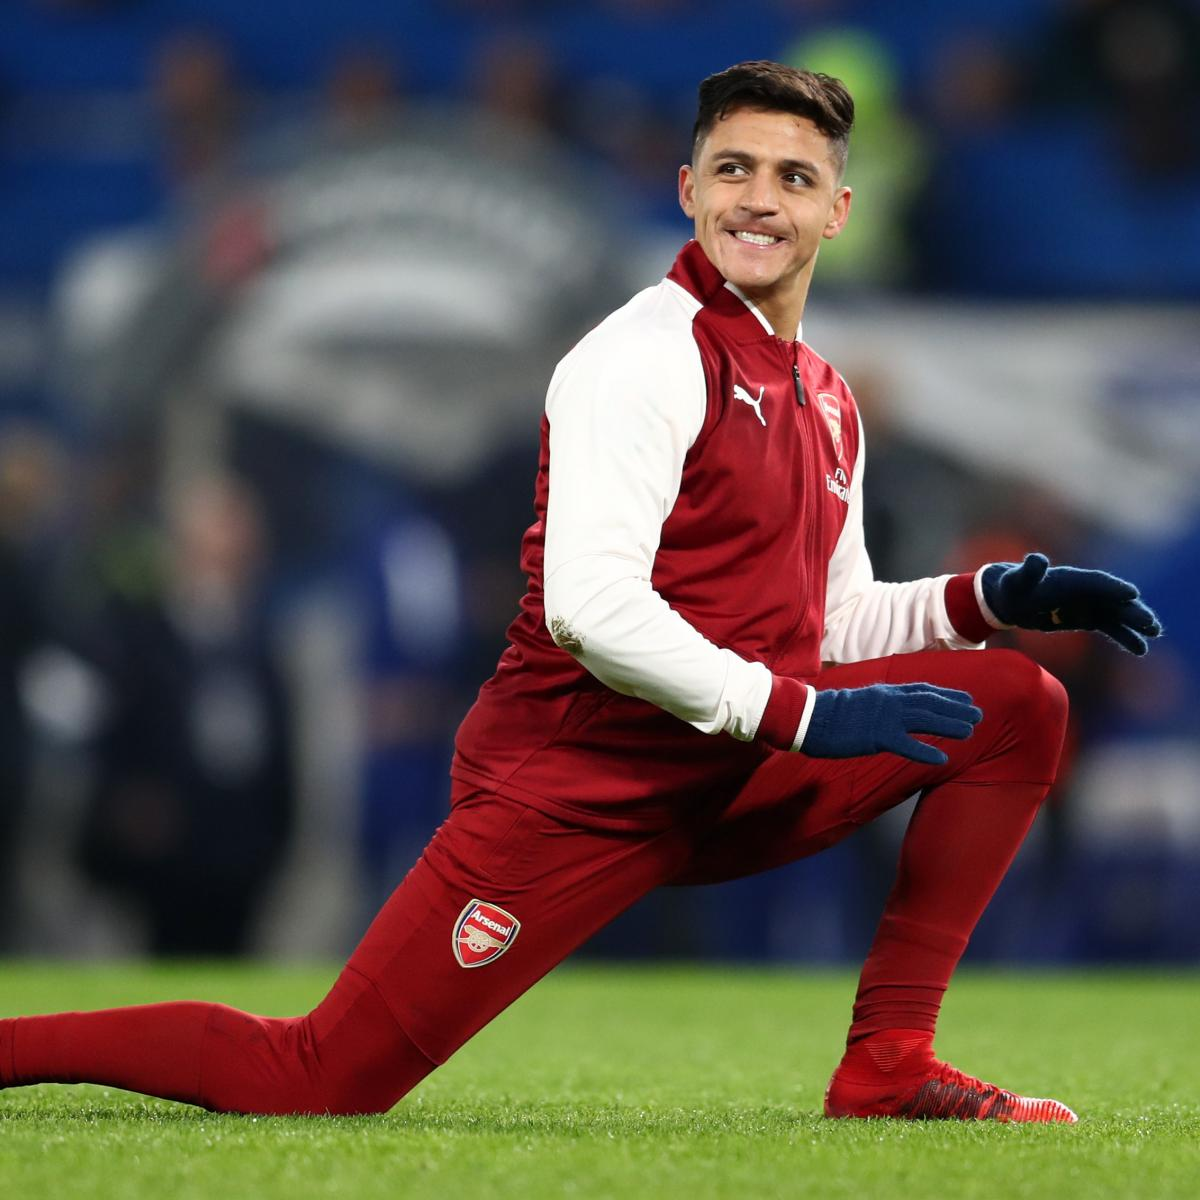 Manchester United Transfer News Alexis Sanchez Rumours: Manchester United Transfer News: Alexis Sanchez And